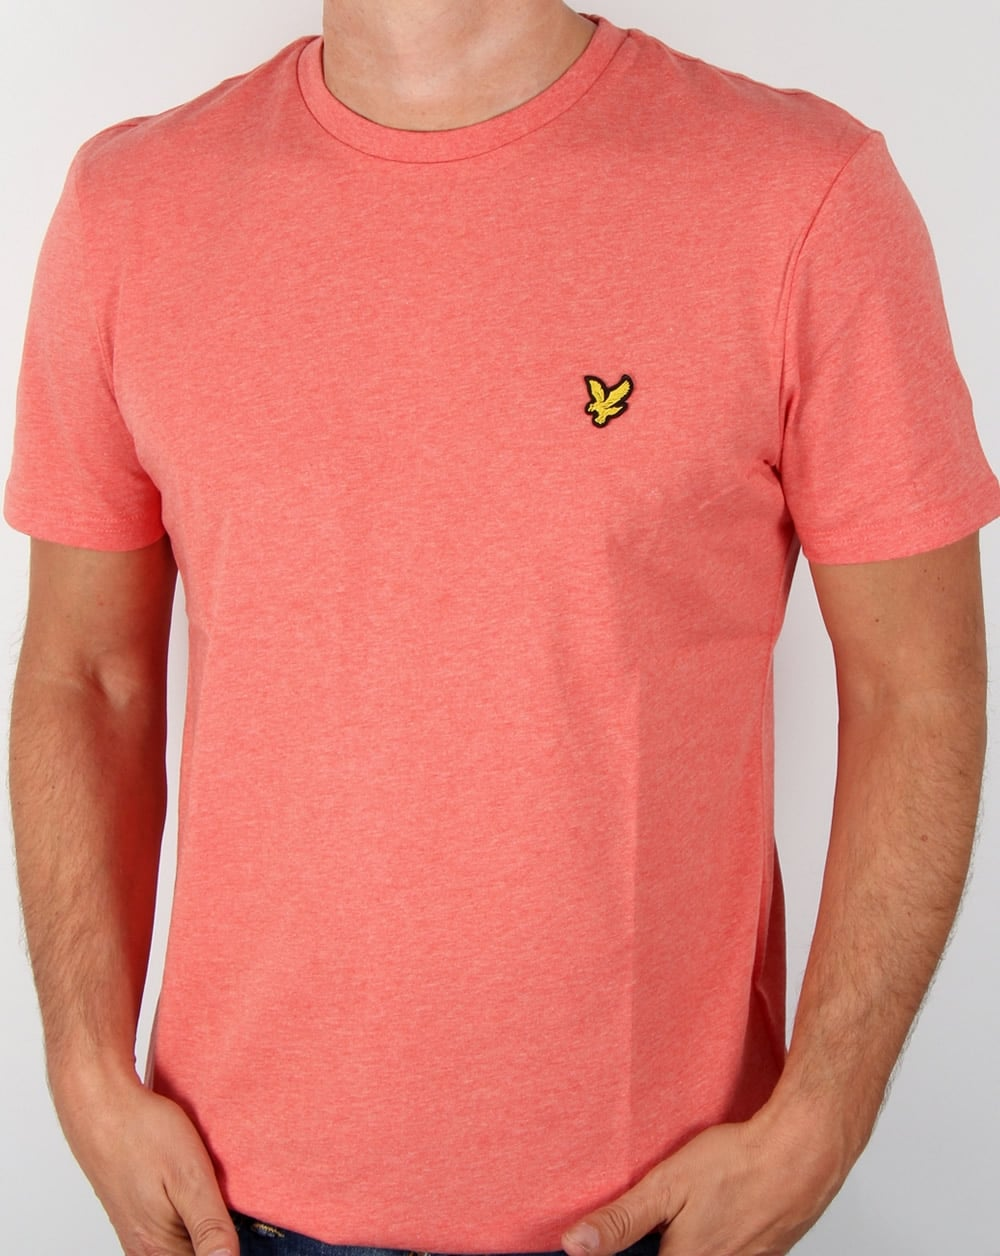 Lyle and scott t shirt terracotta marl tee crew neck round for Lyle and scott shirt sale